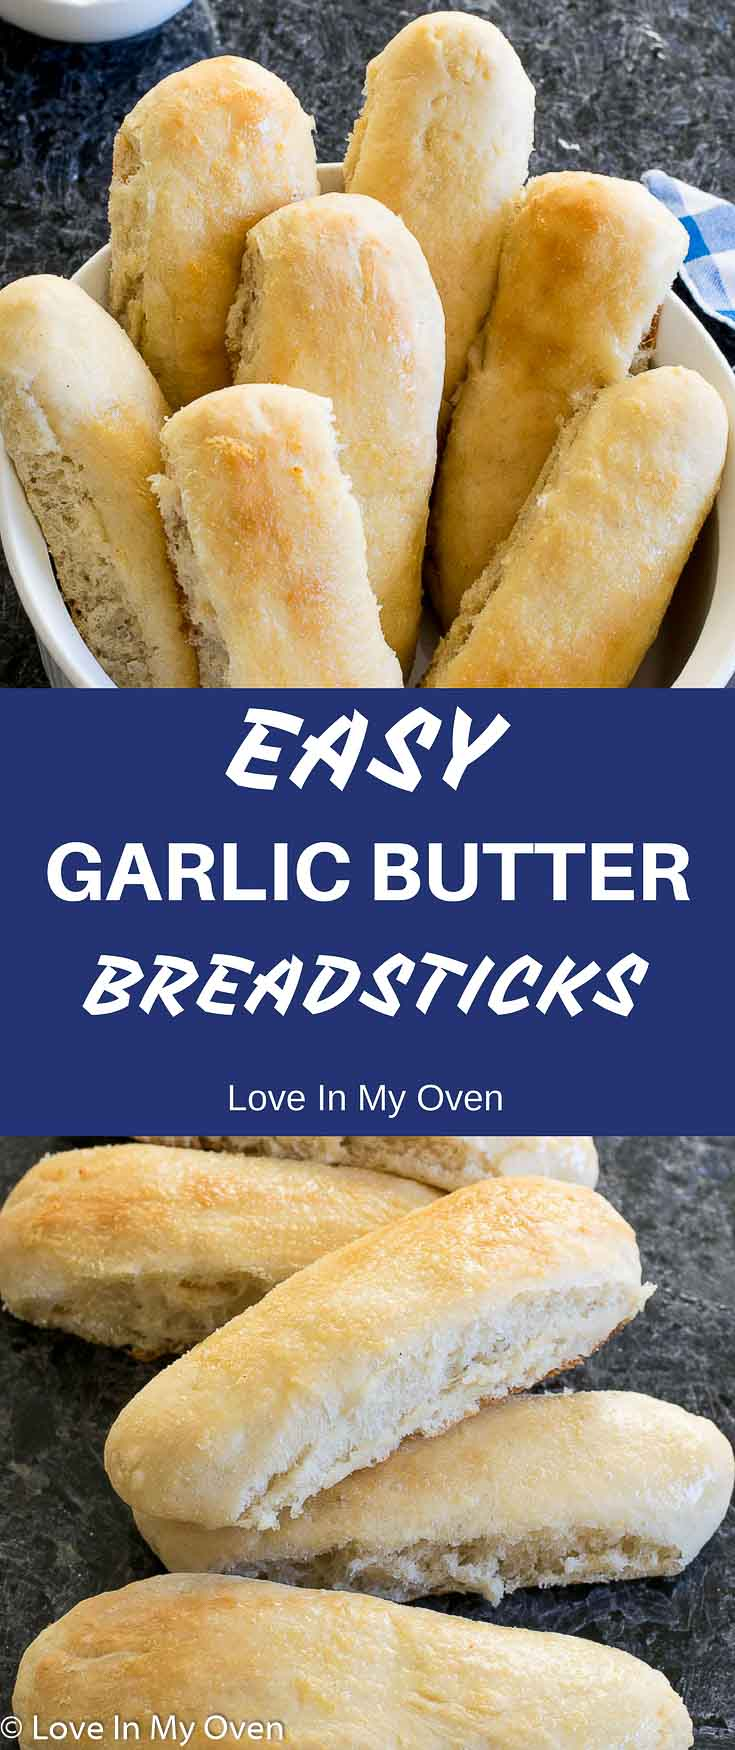 Soft, pillowy, garlic butter breadsticks that can be yours in just over an hour! Completely from scratch and COMPLETELY delicious!